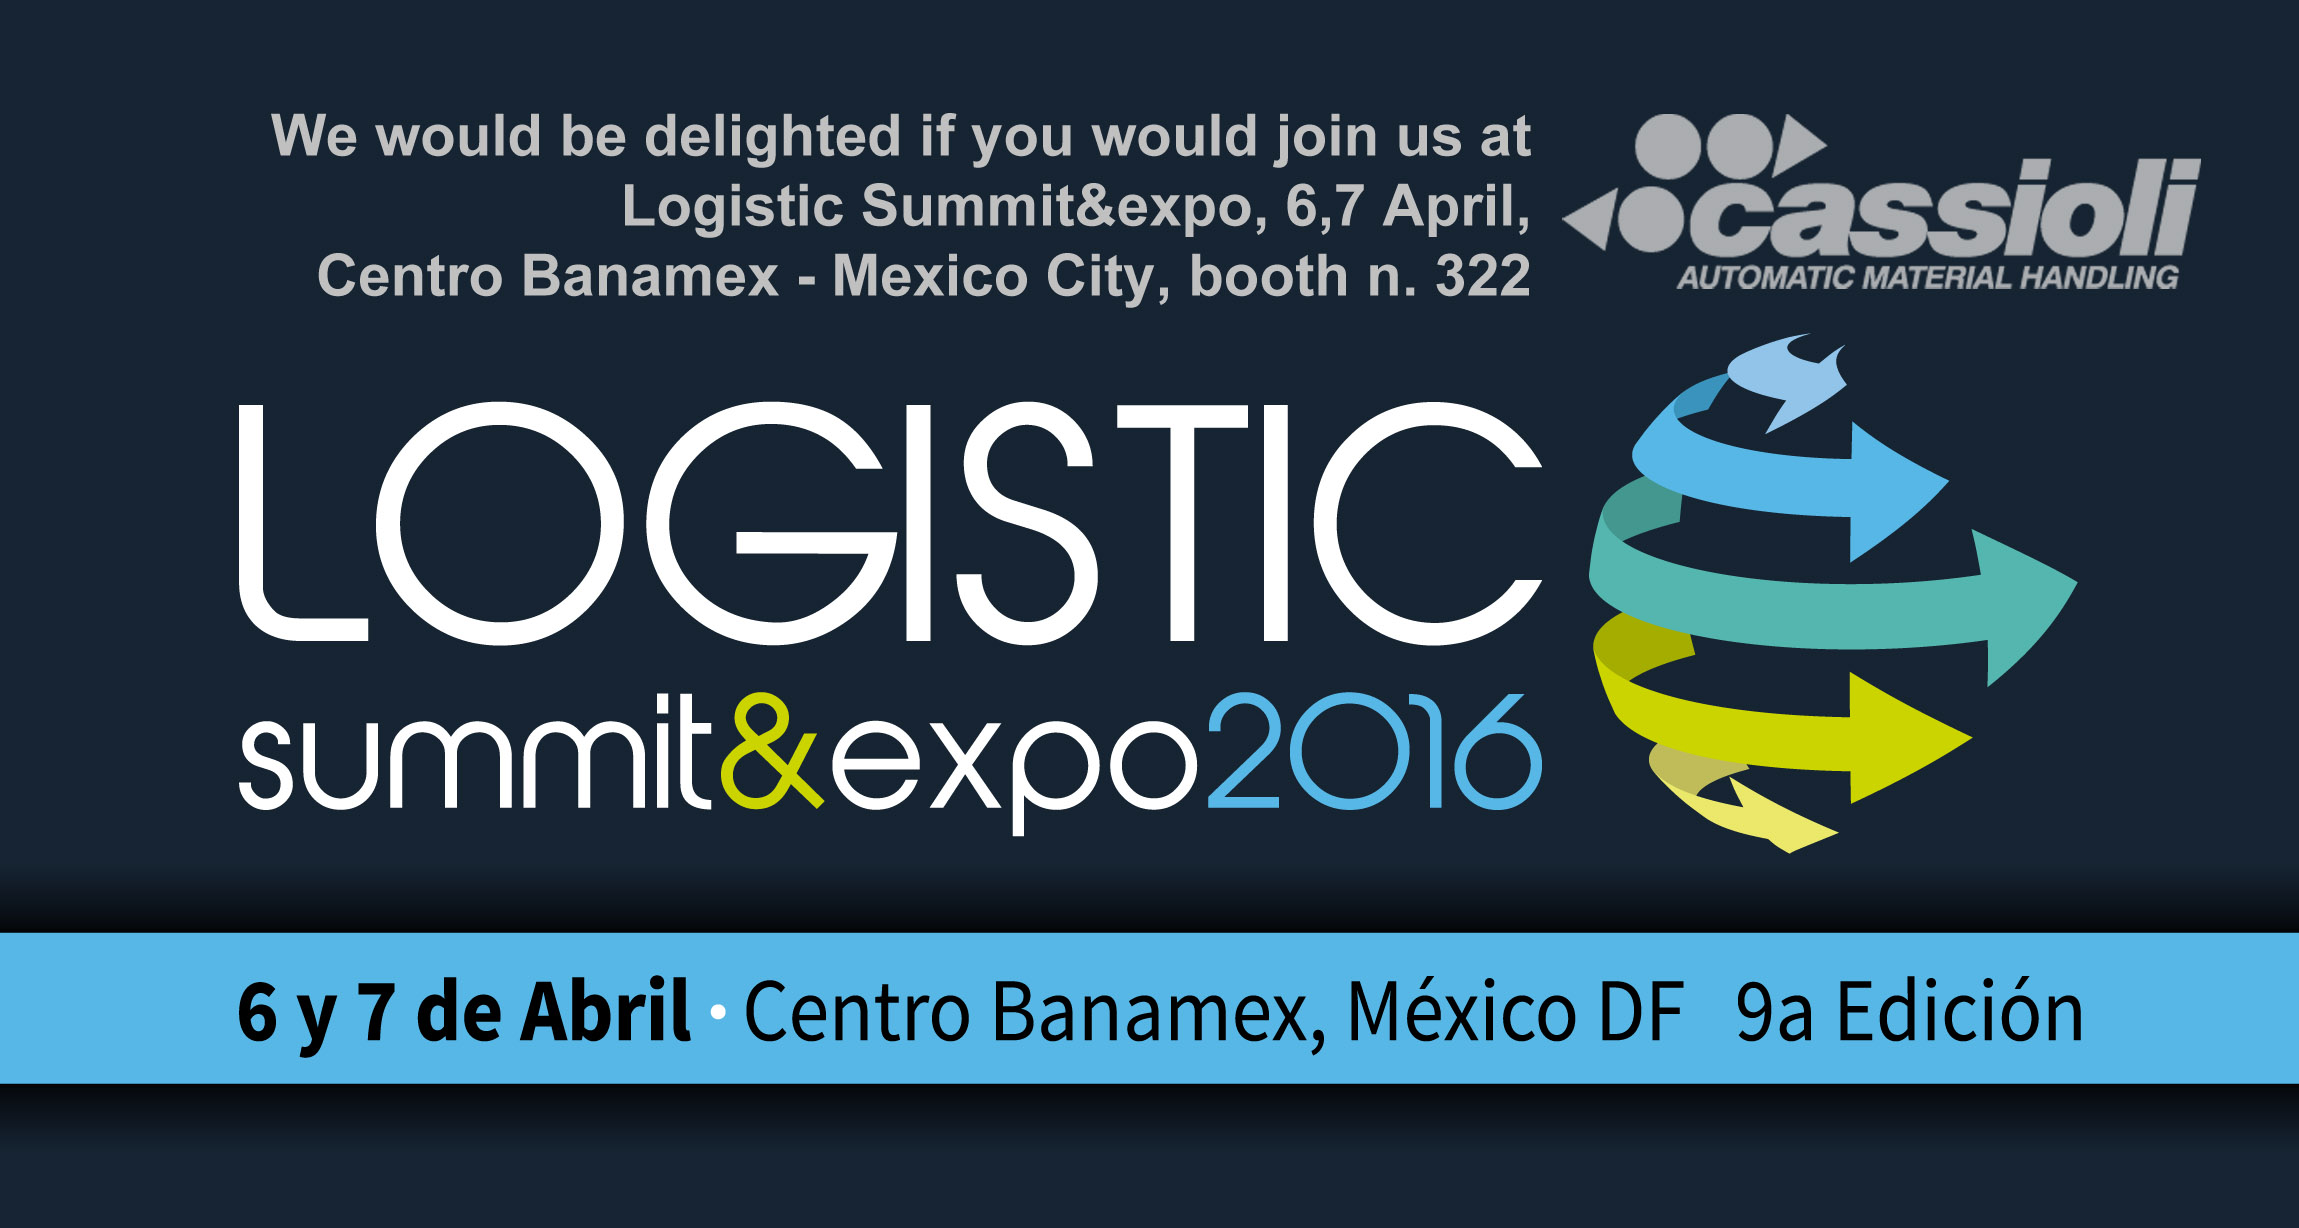 Logistic Summit & expo